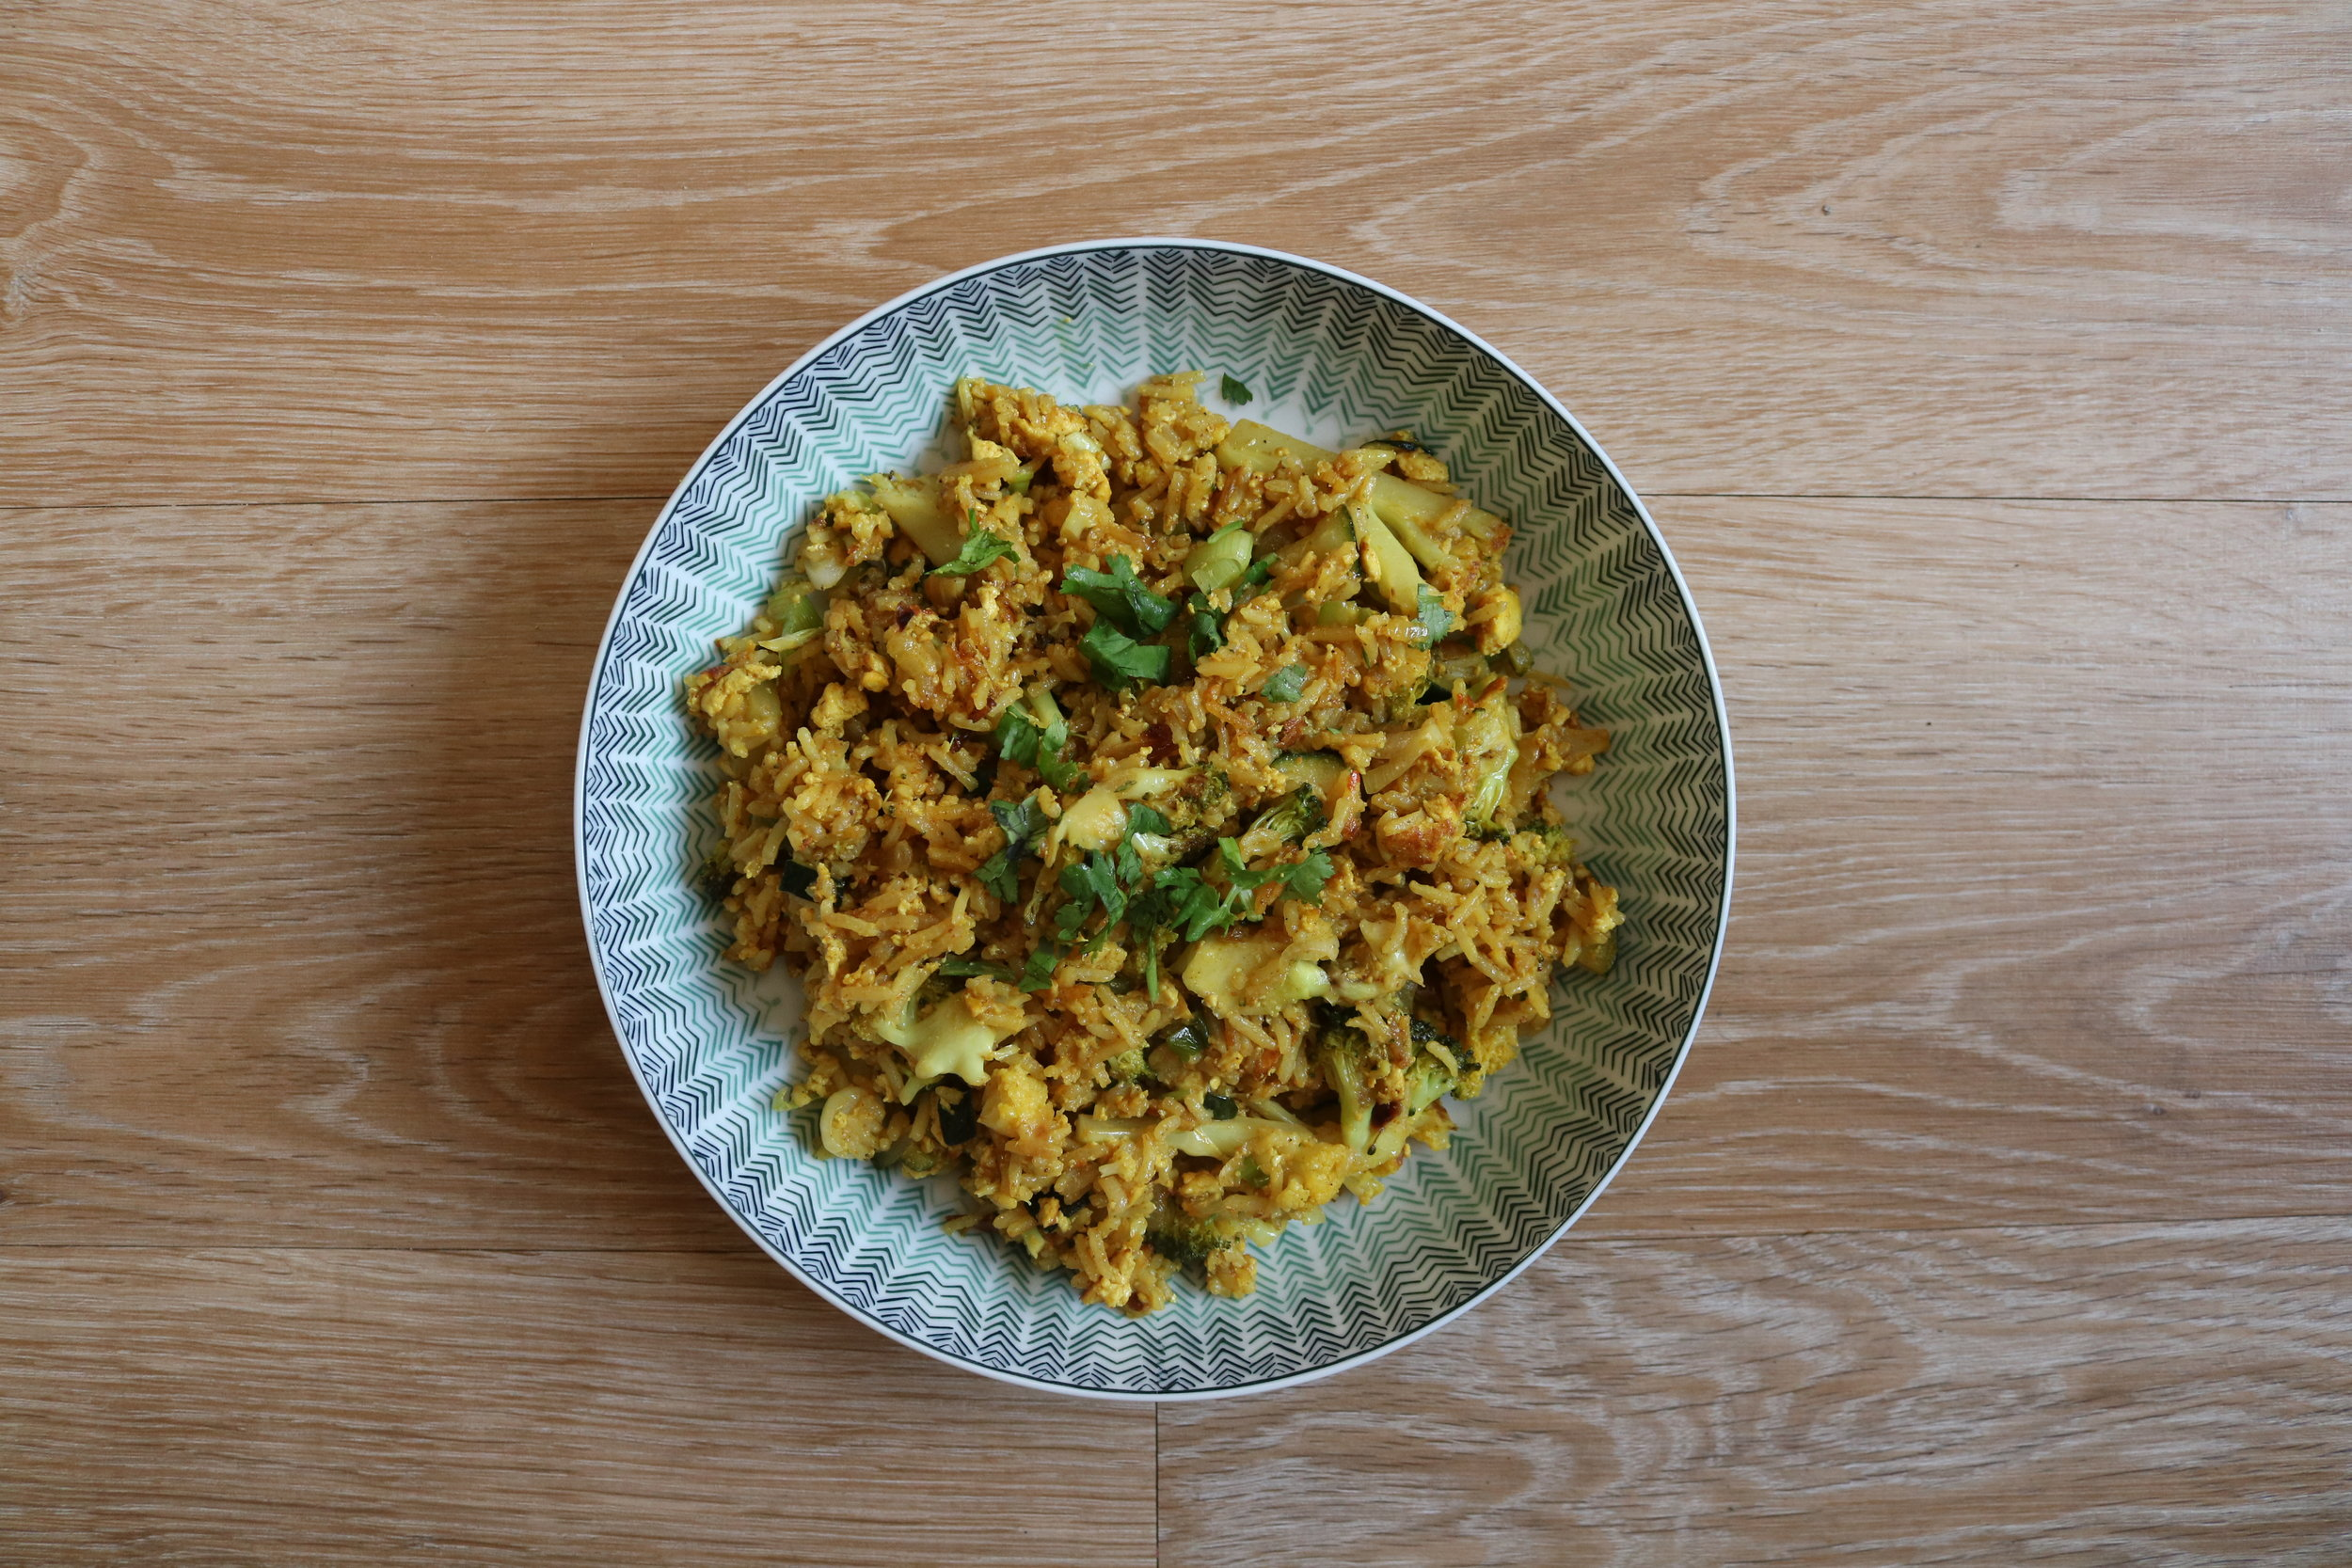 Indian fried rice - rice, tofu, veggies